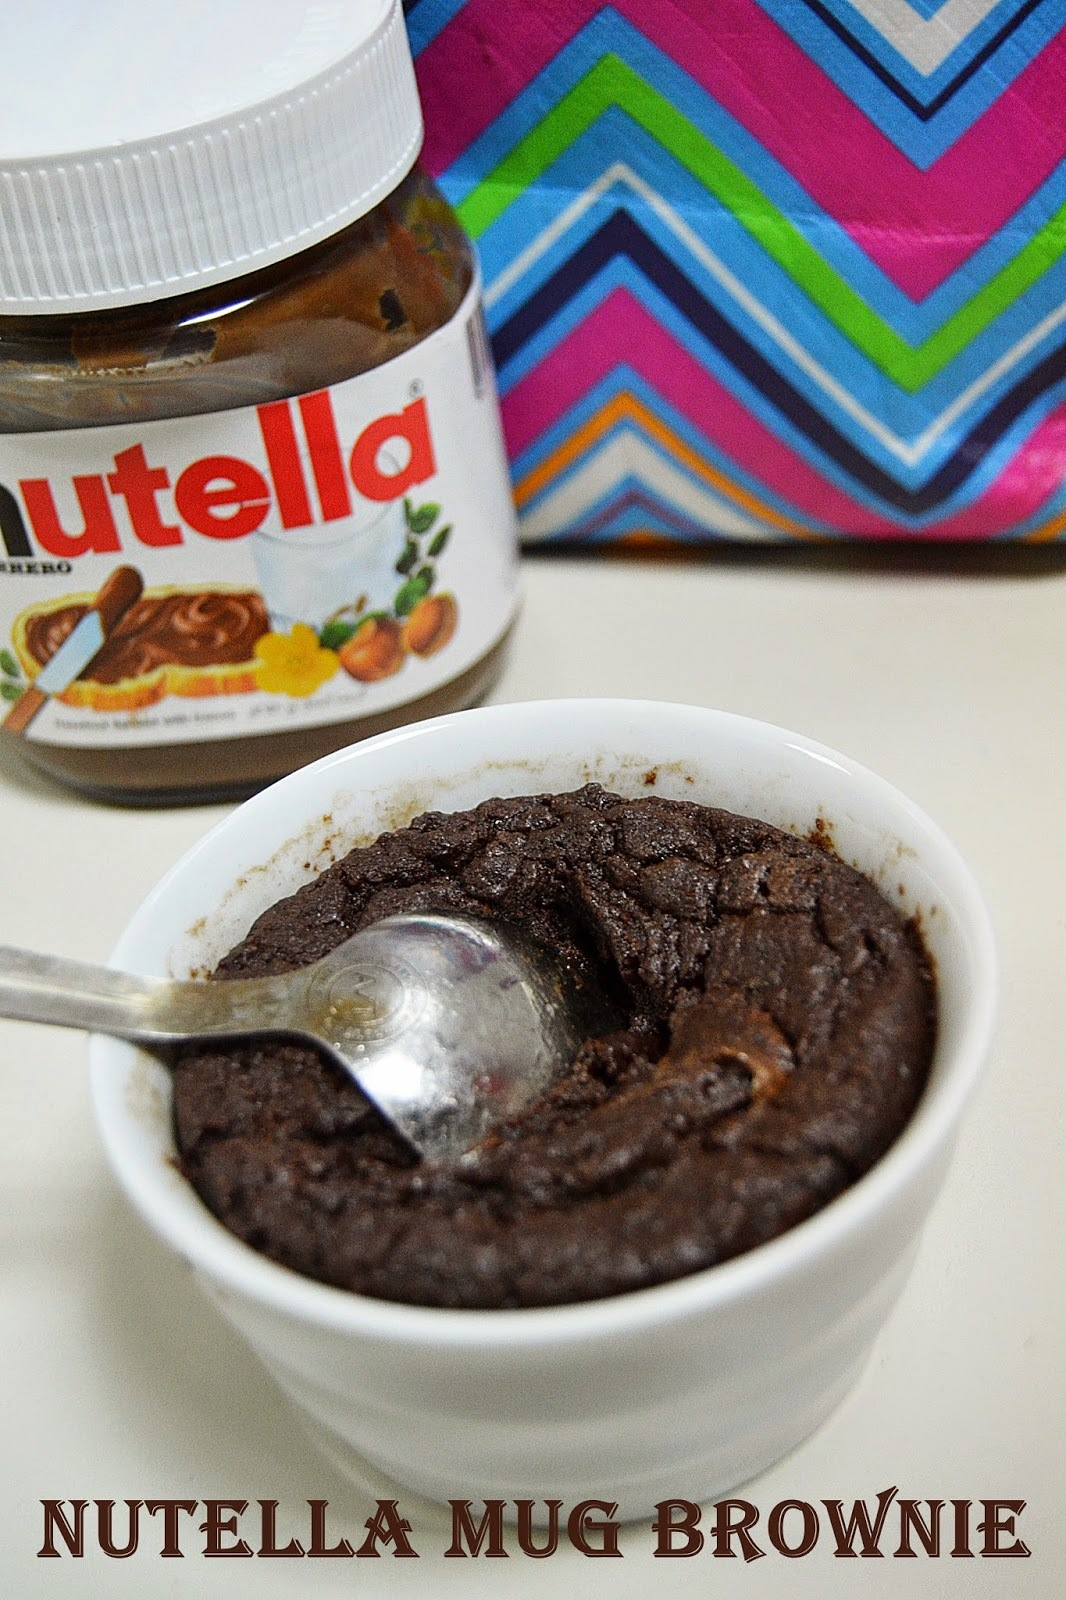 Nutella Mug Brownie